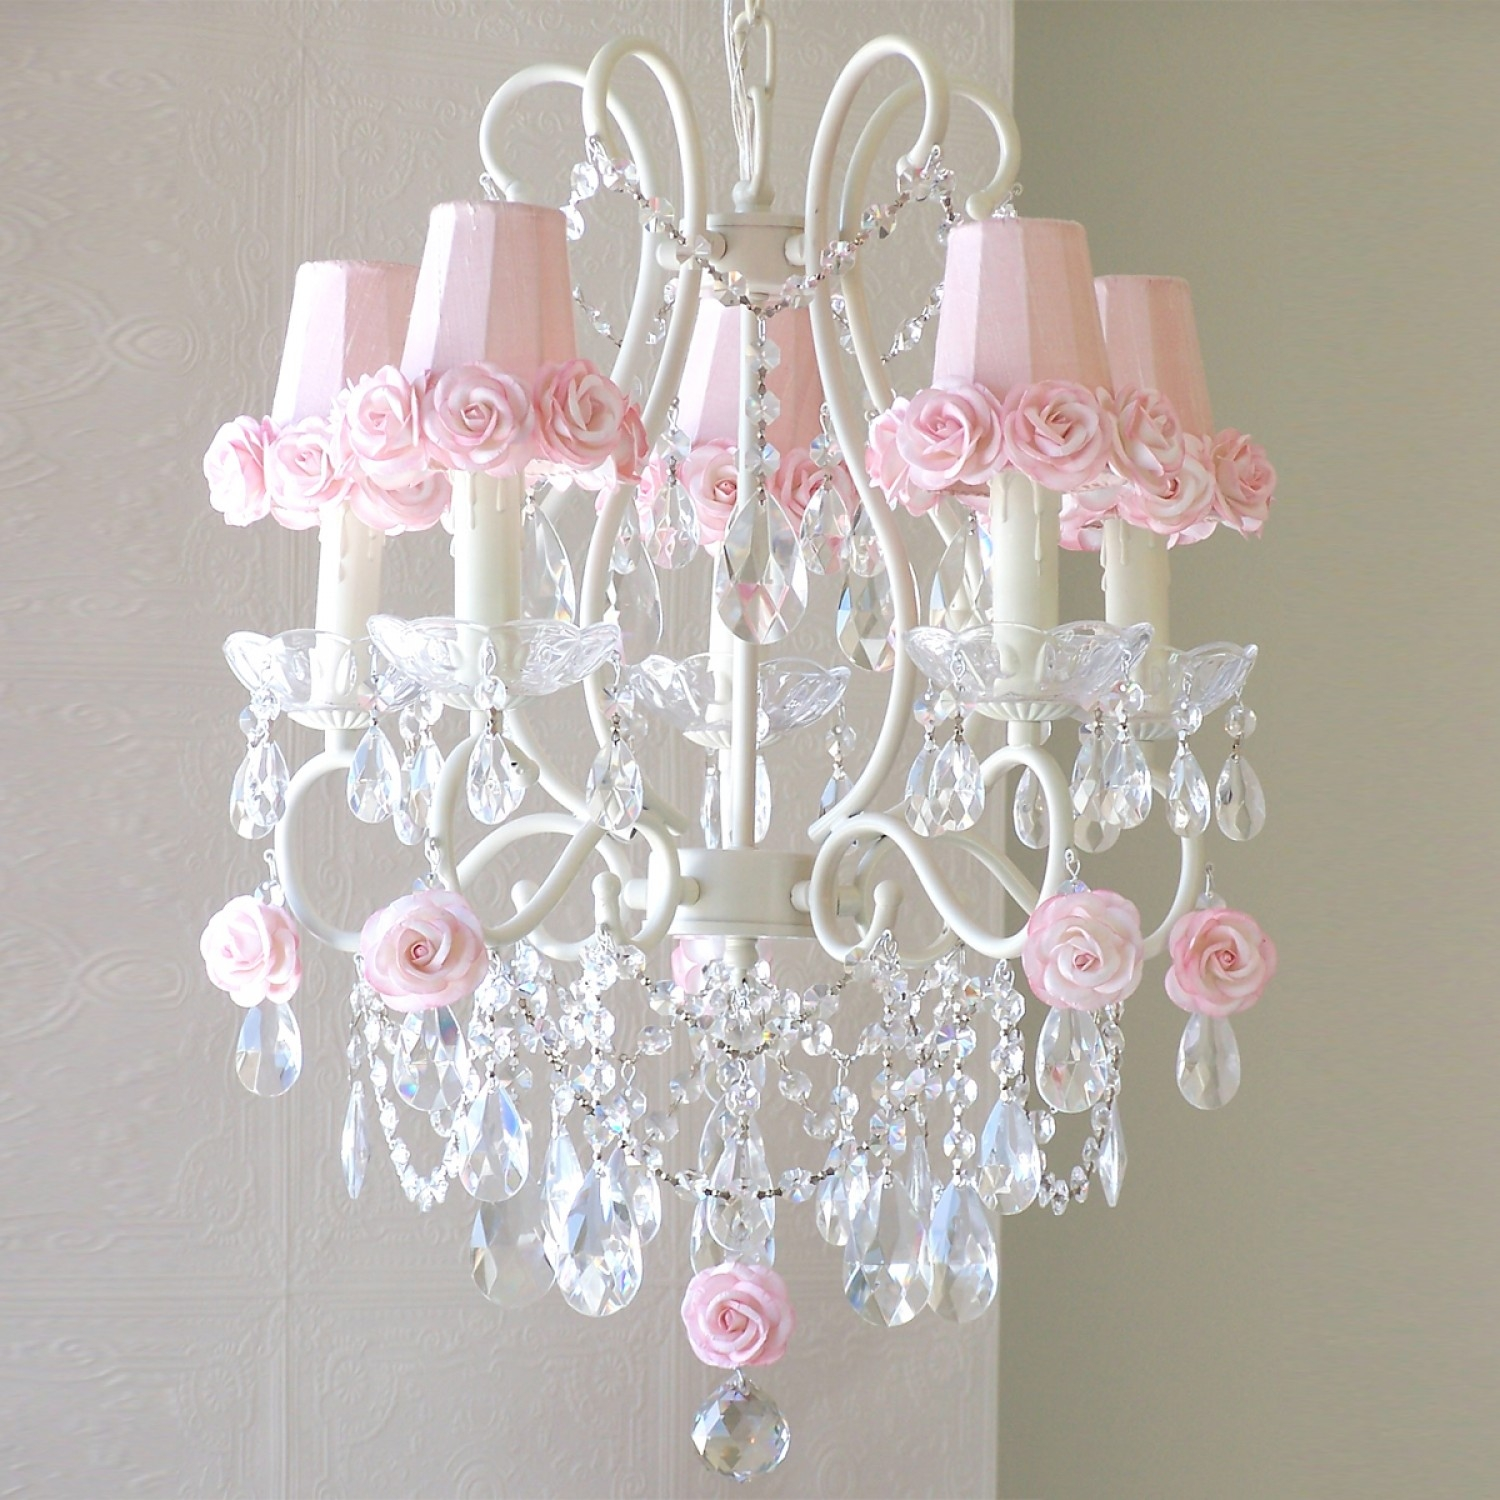 The Best Chandelier Lamp Shades Best Home Decor Inspirations Intended For Lampshade Chandeliers (Image 23 of 25)